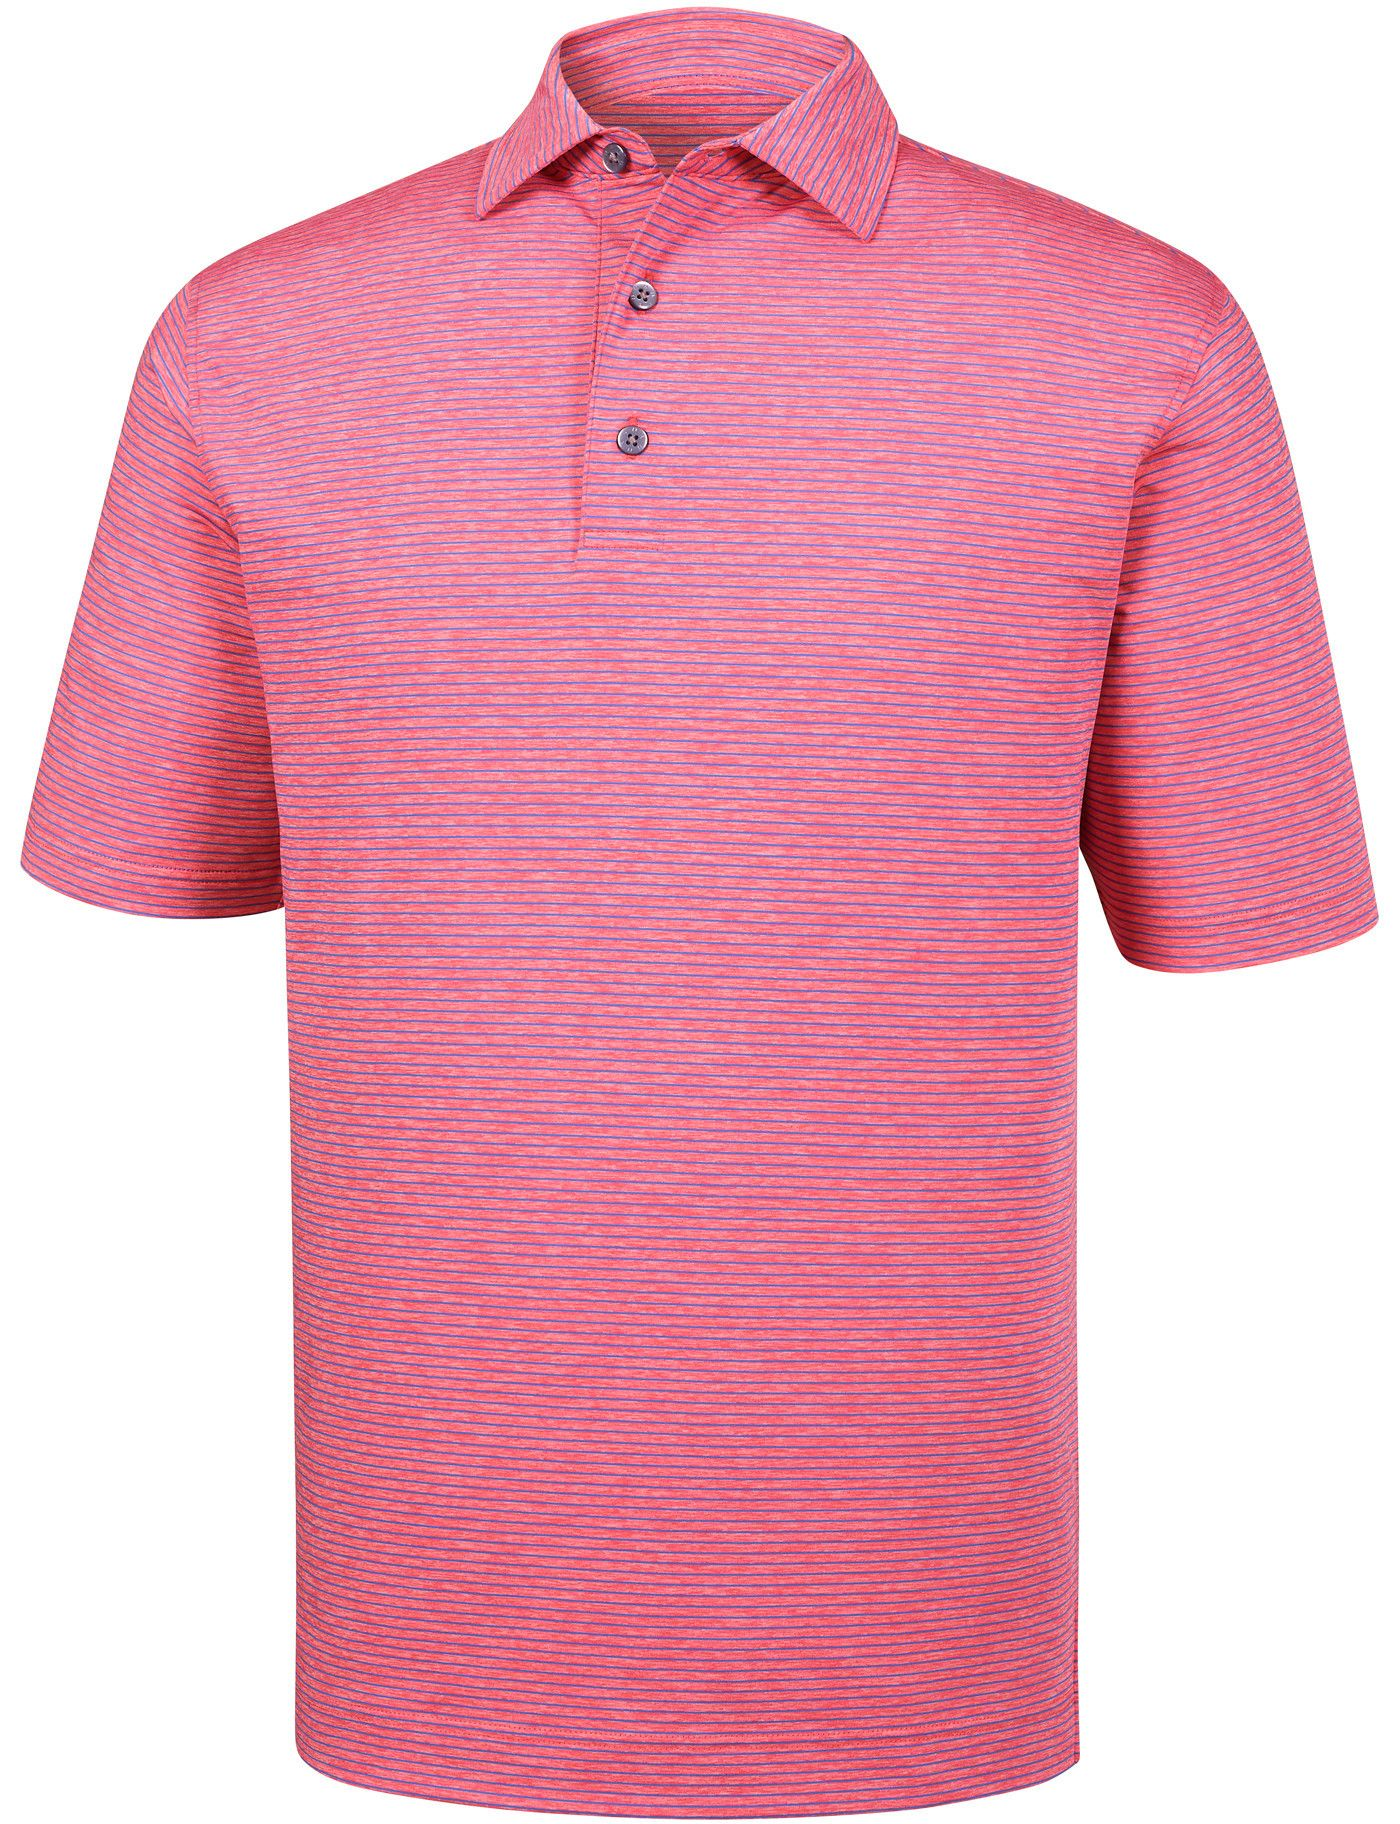 FootJoy Men's Heather Pinstripe Lisle Golf Polo